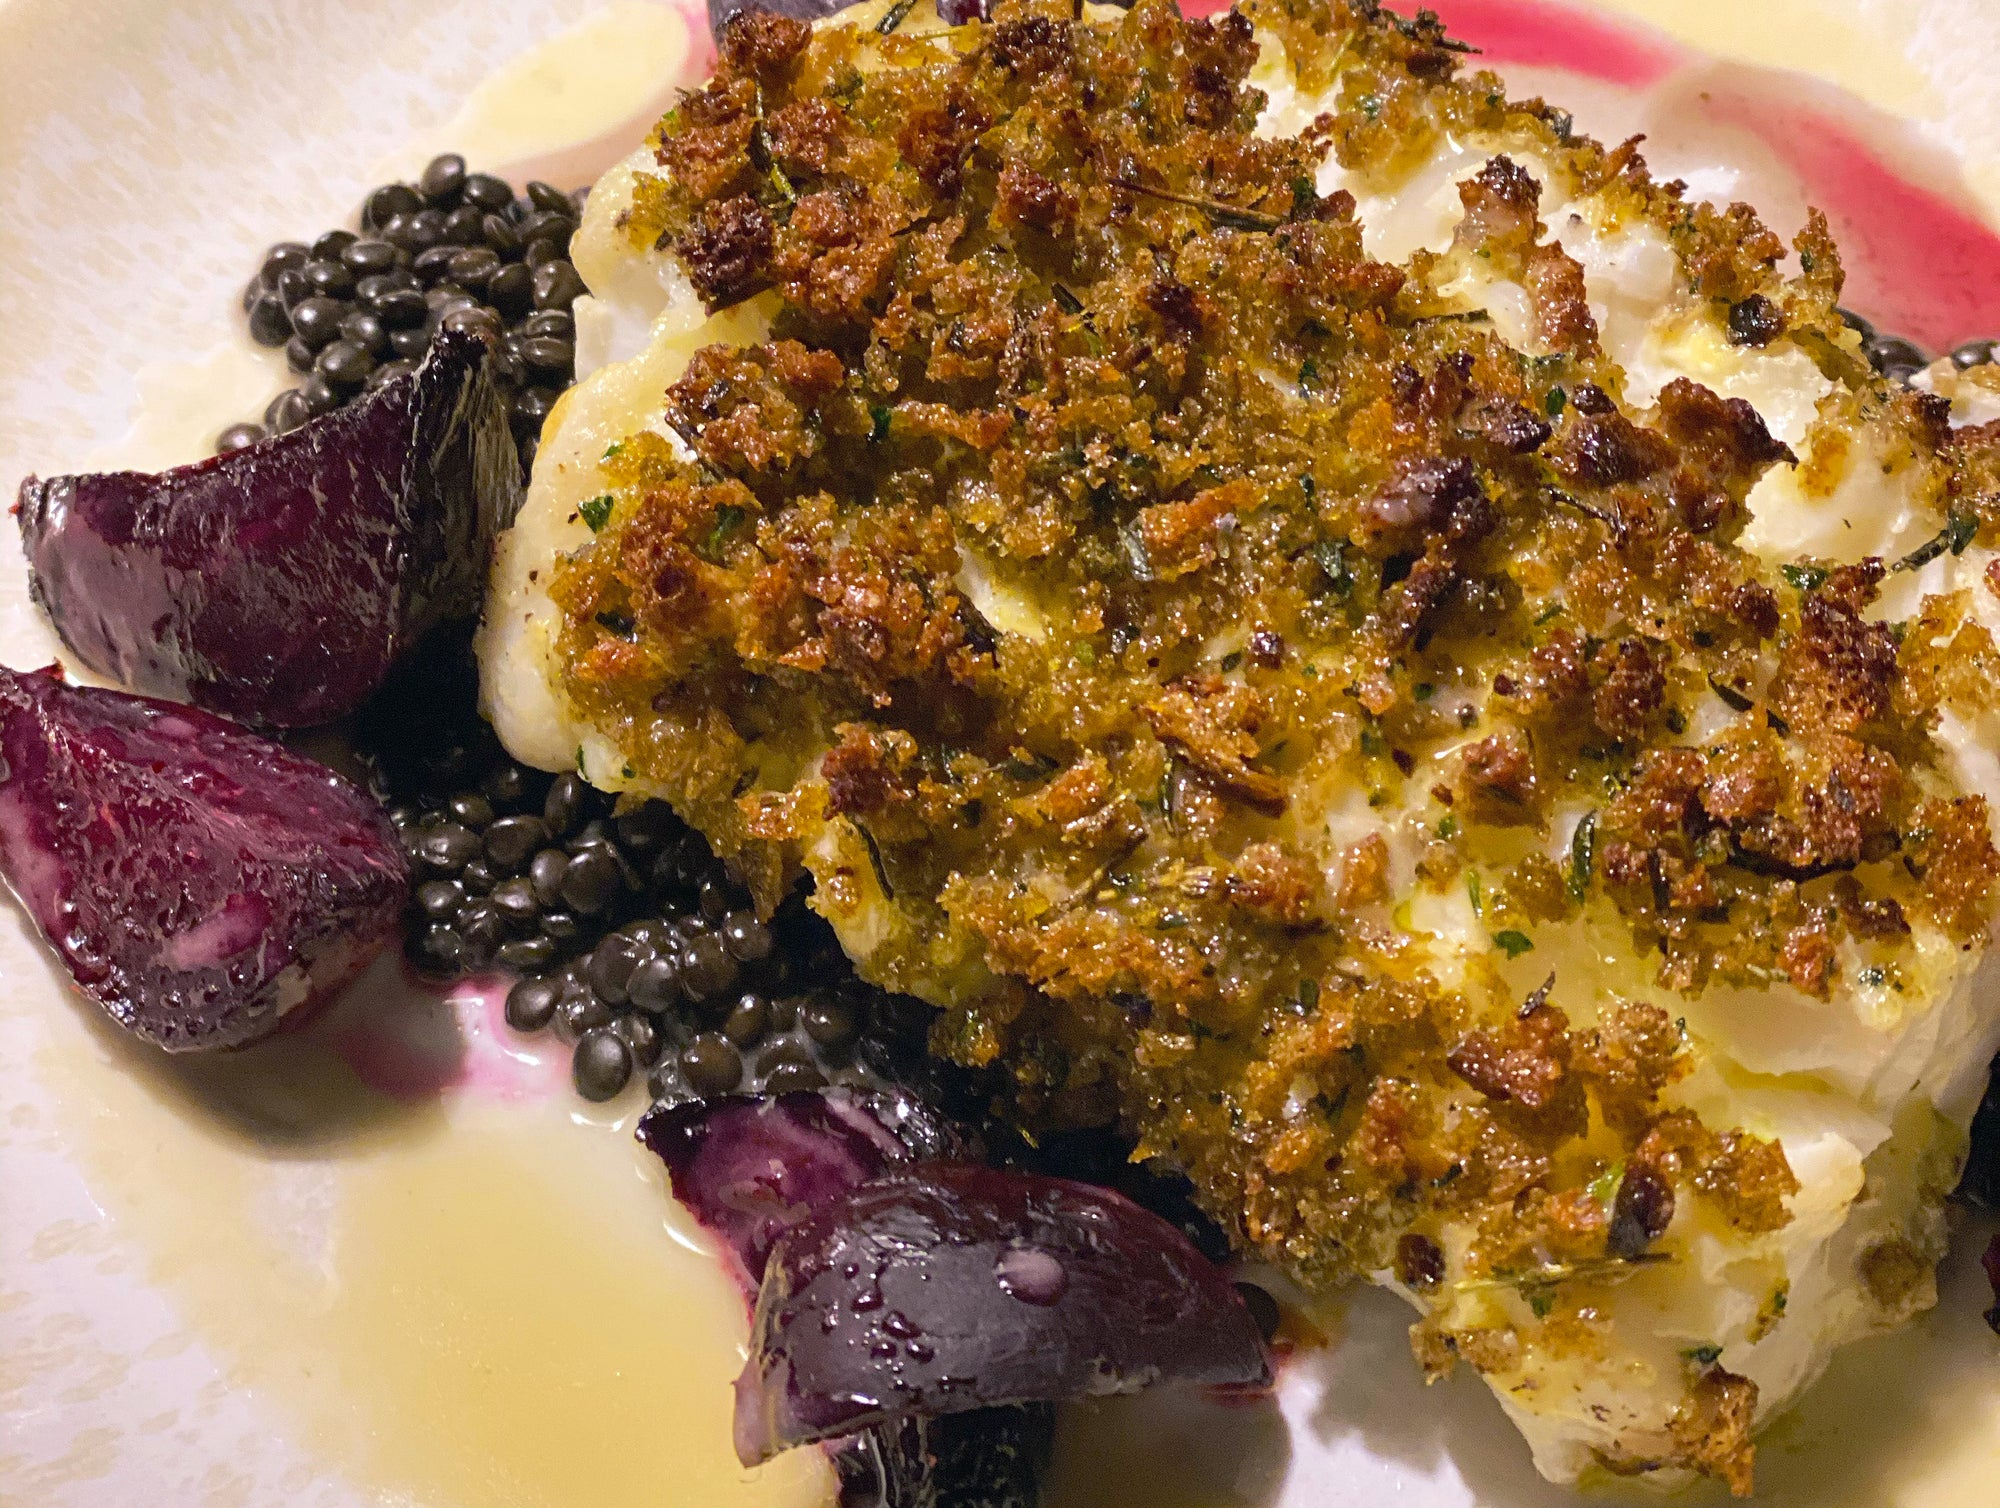 Chefs at Home: Baked Cod with Herbed Breadcrumbs, Roasted Beets and Black Lentils